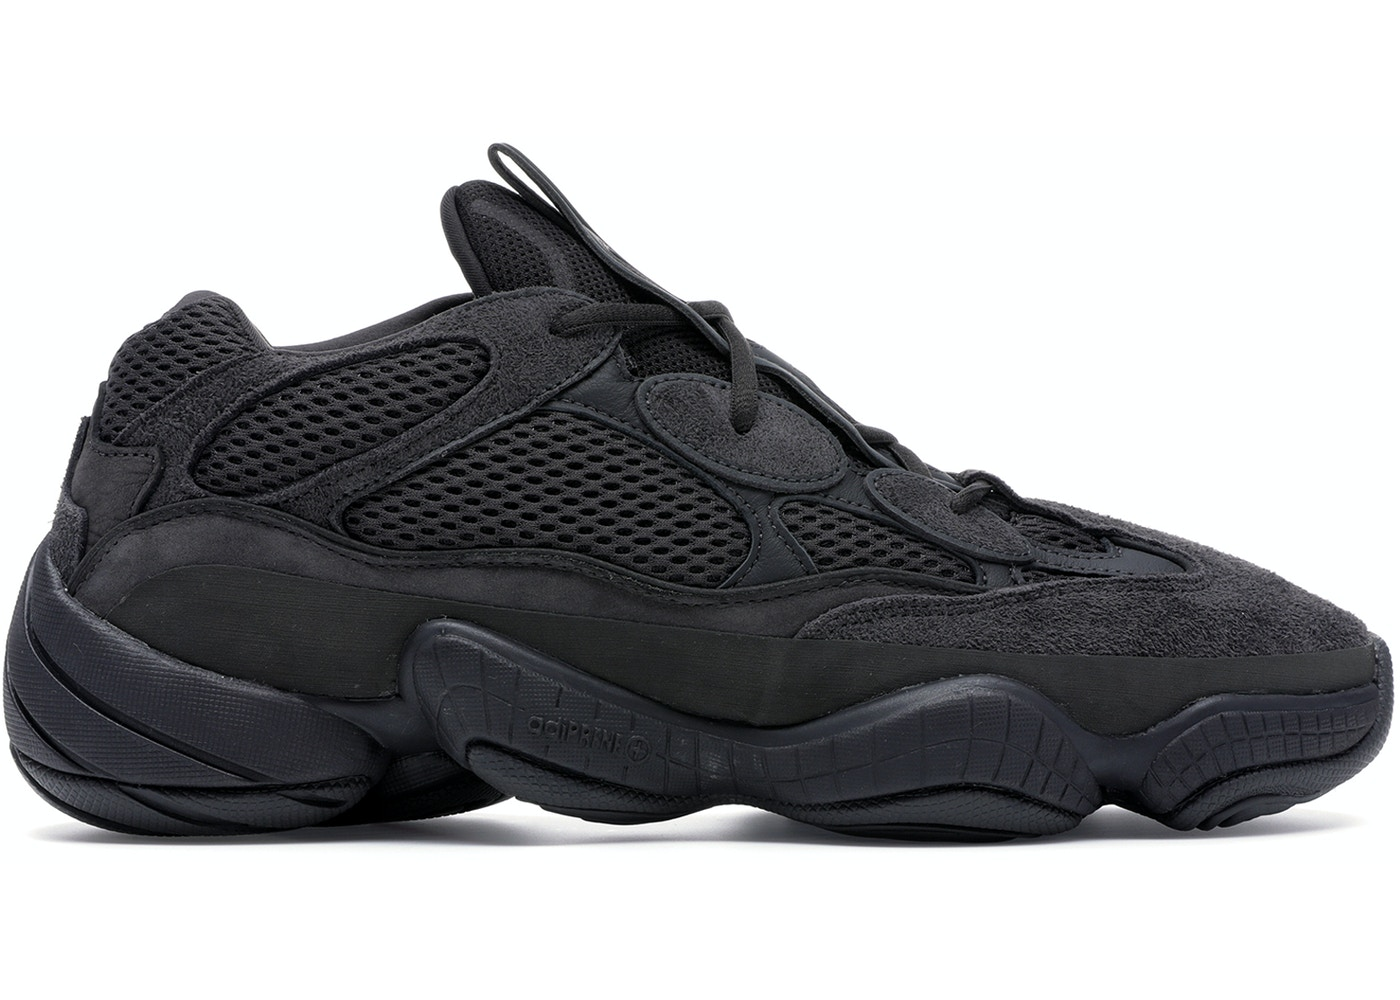 buy popular 72a8f a83a3 adidas Yeezy 500 Utility Black